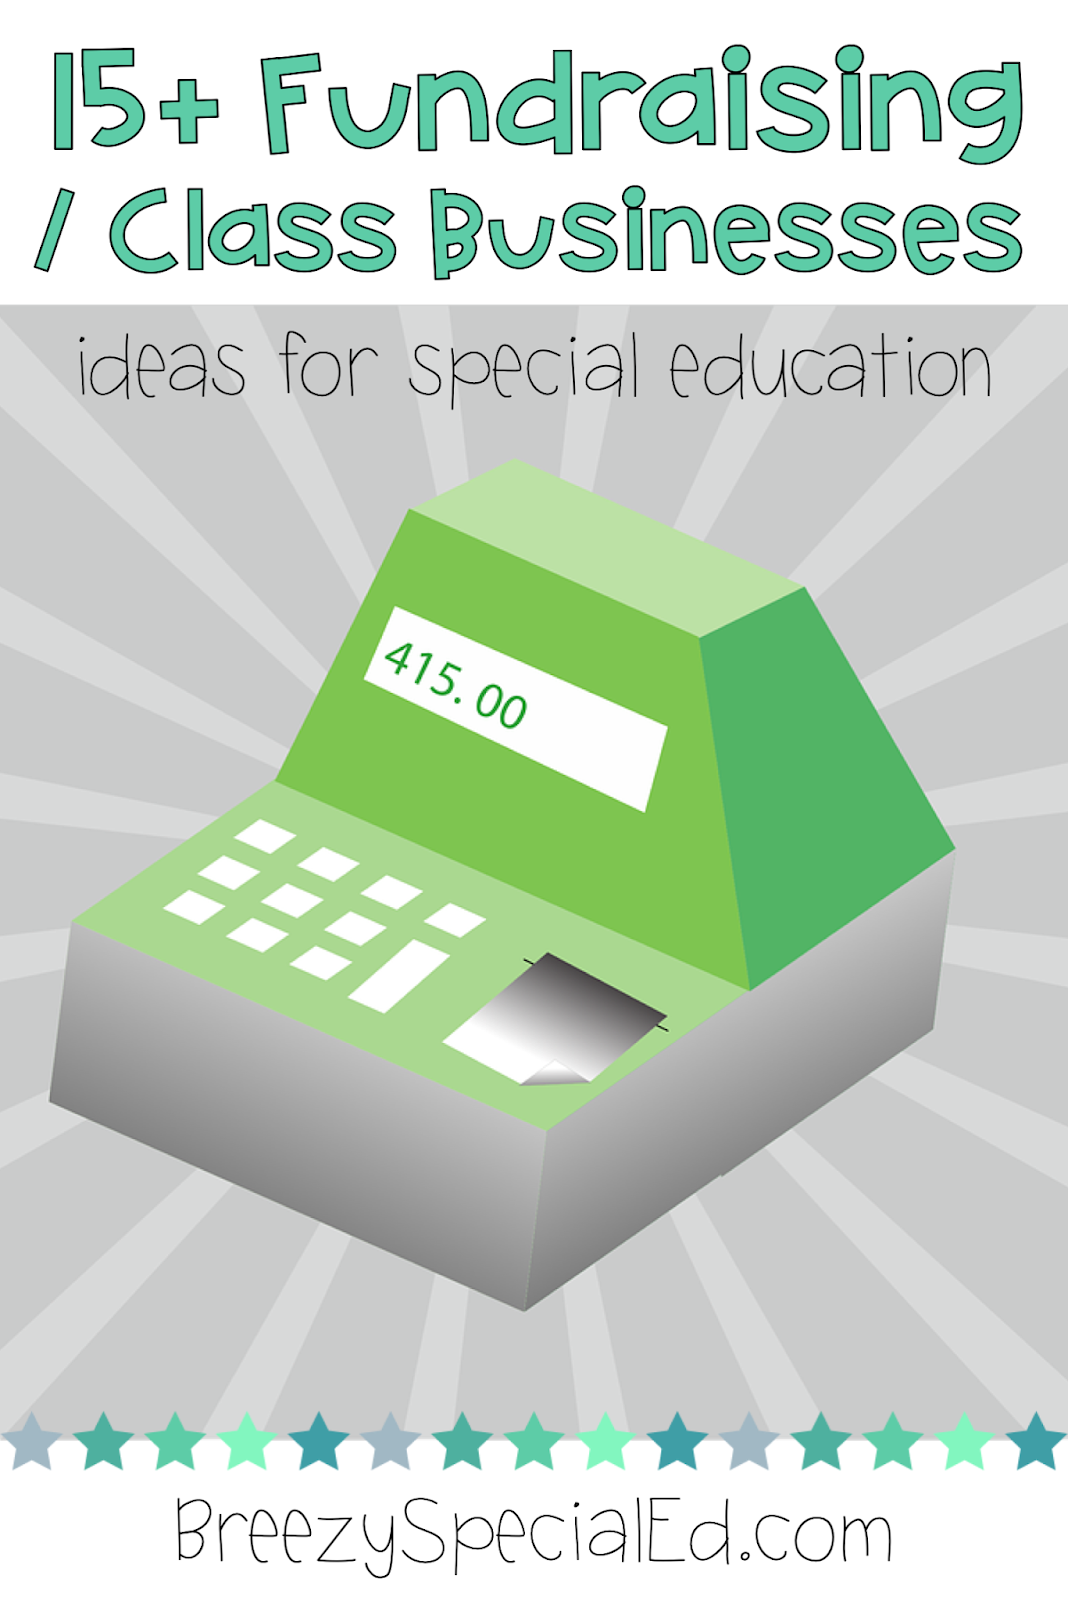 Class business and fundraising ideas for Special Education life skill classes